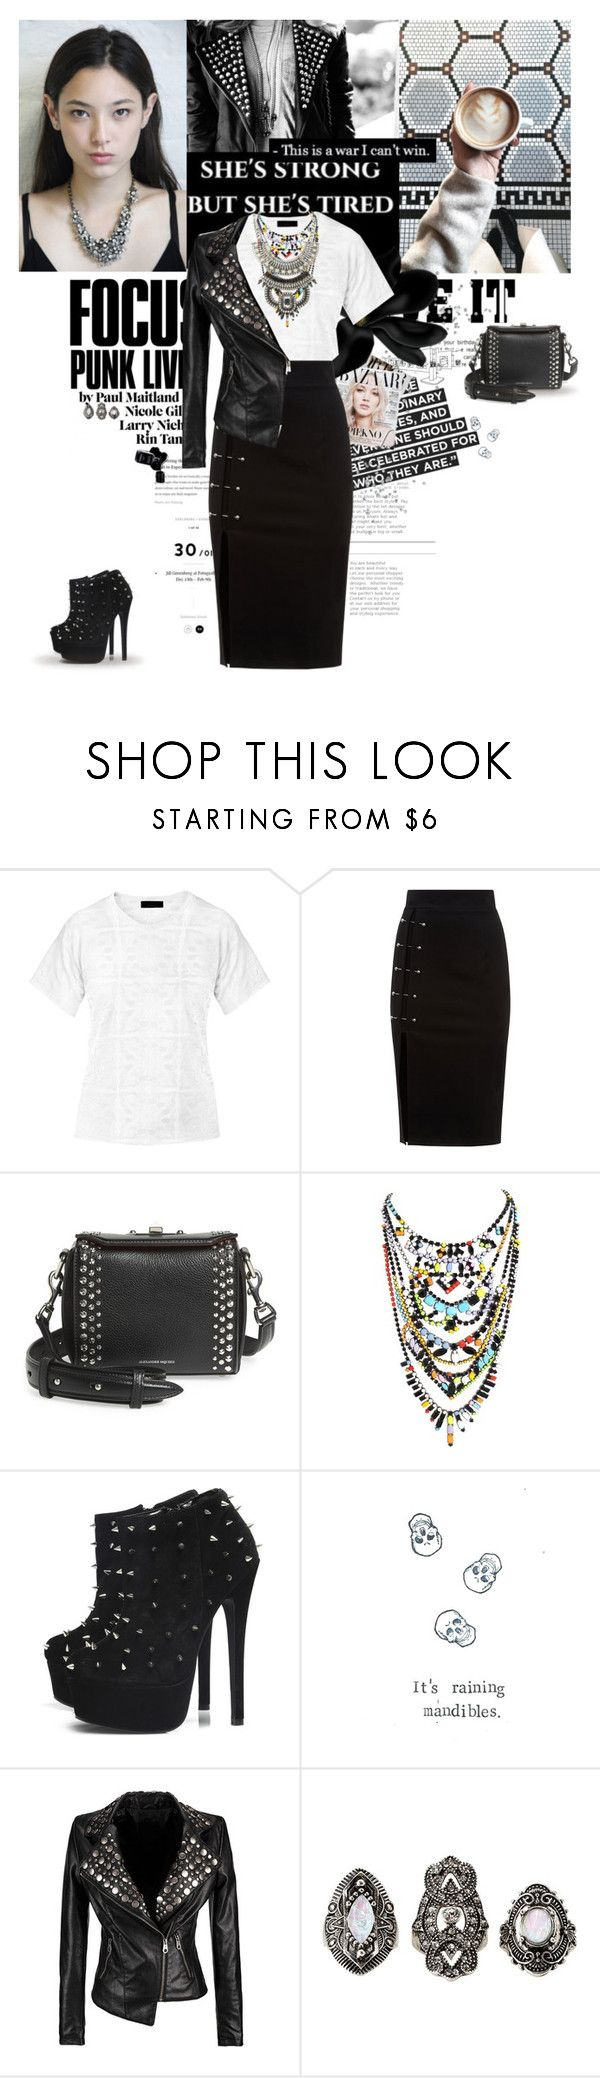 """Time for the punk glam!"" by karliuxxx ❤ liked on Polyvore featuring Burberry, Alexander McQueen, Tom Binns, AX Paris, Charlotte Russe and Chanel"